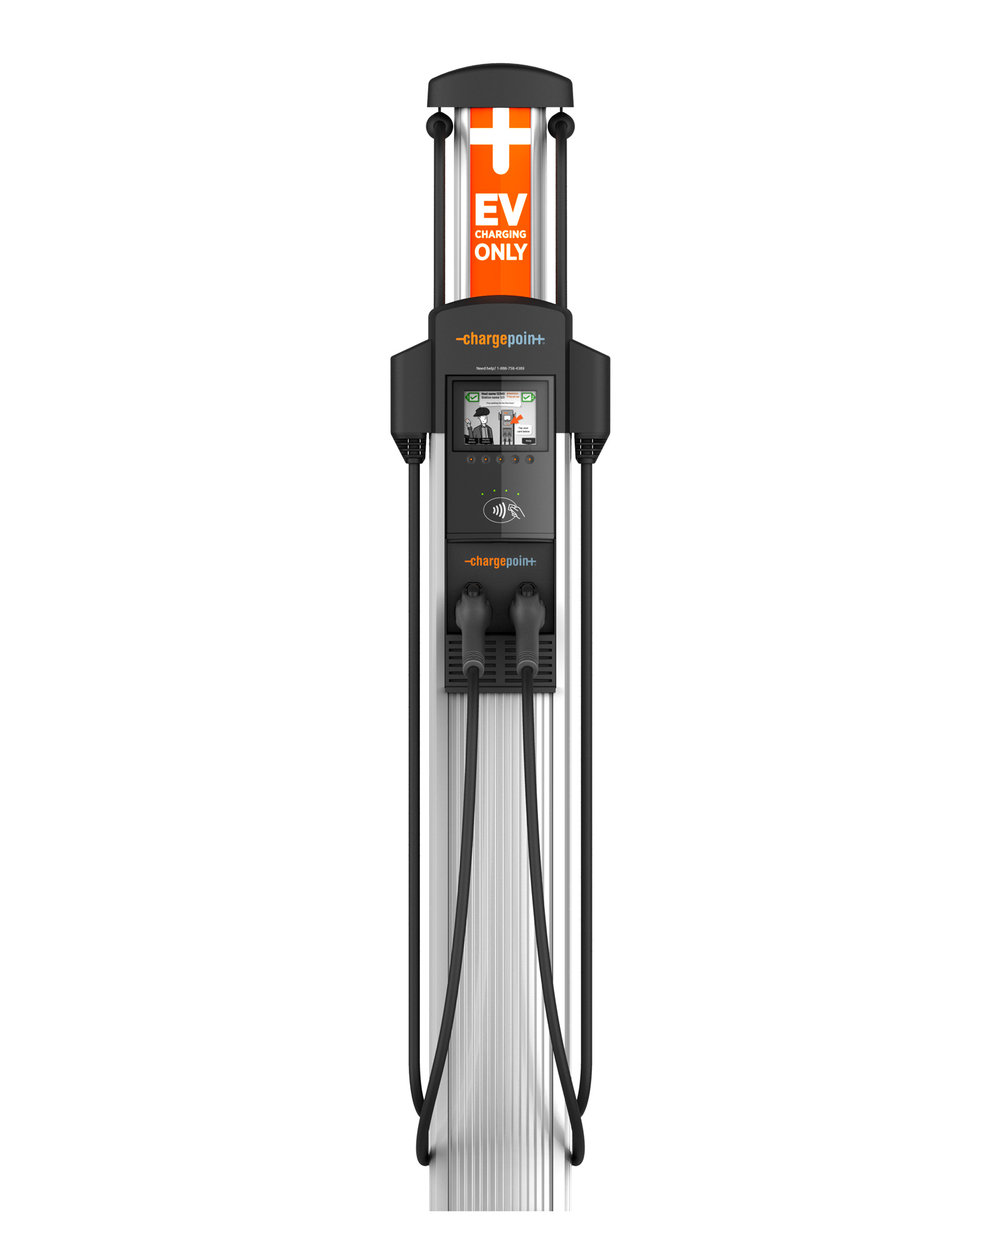 The CPF4021 dual pedestal model is ideal for businesses, municipalities and property owners that want to offer EV charging.